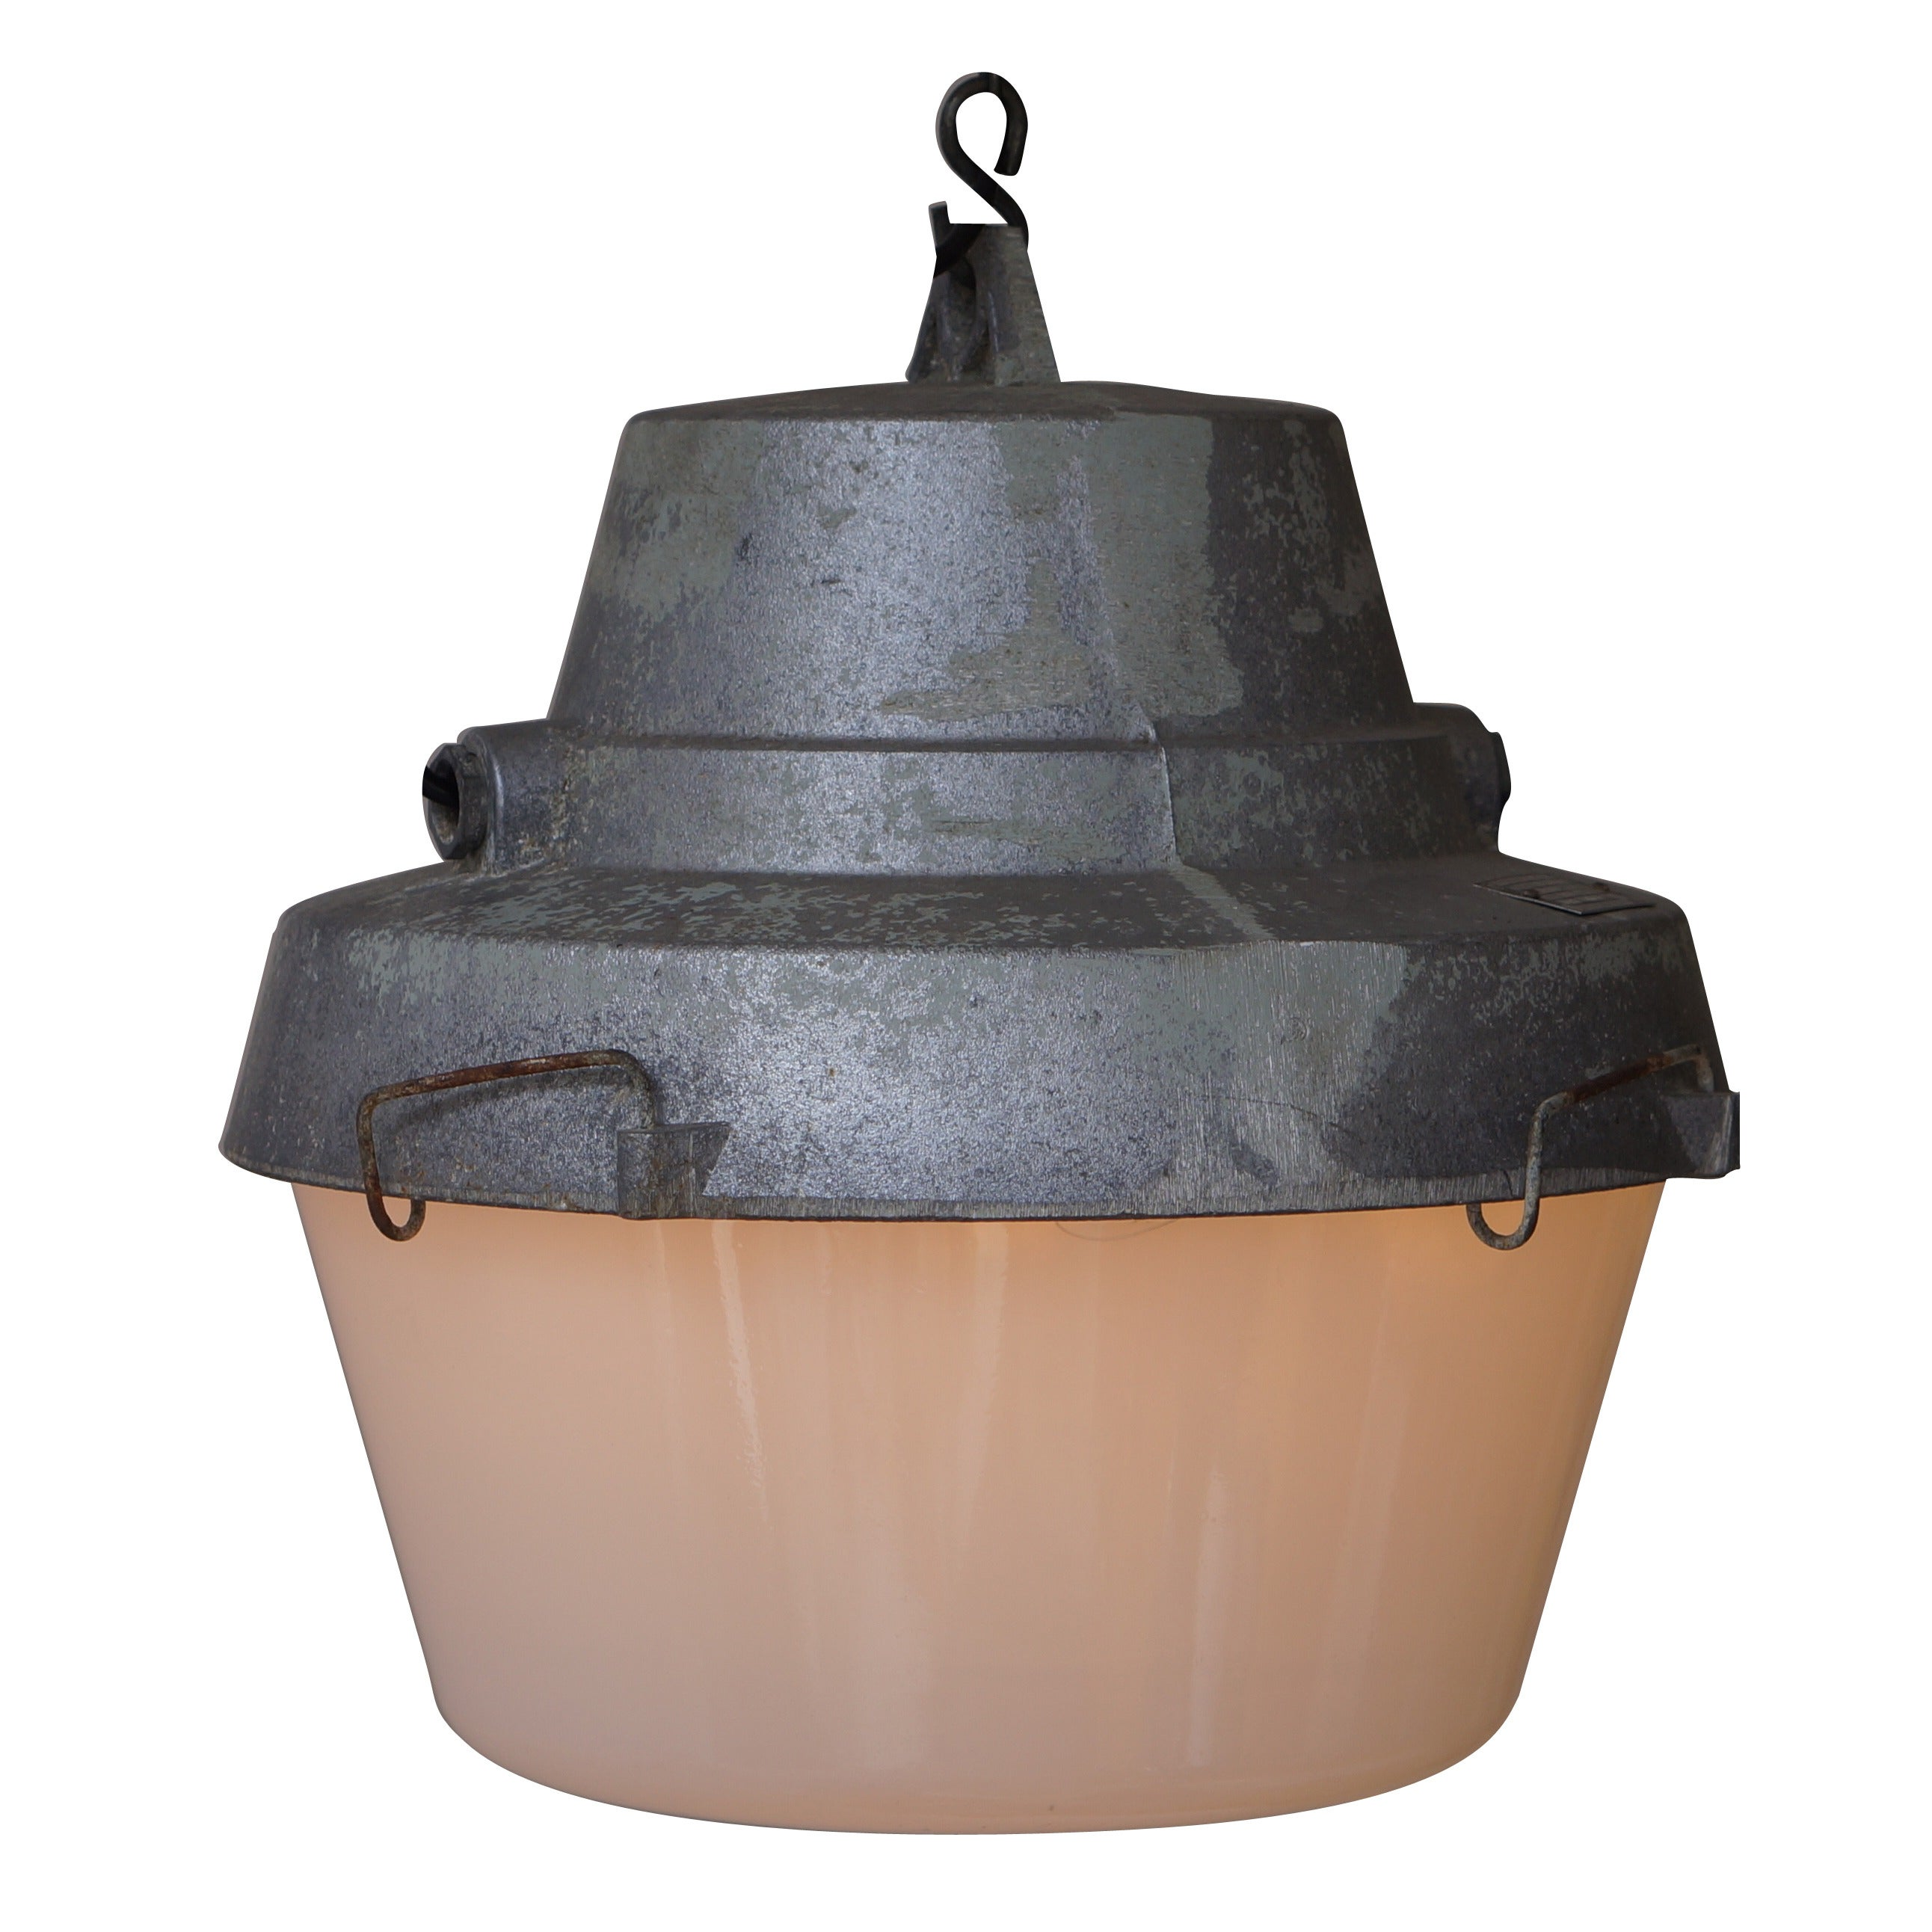 One of Five Industrial Pendant Lights